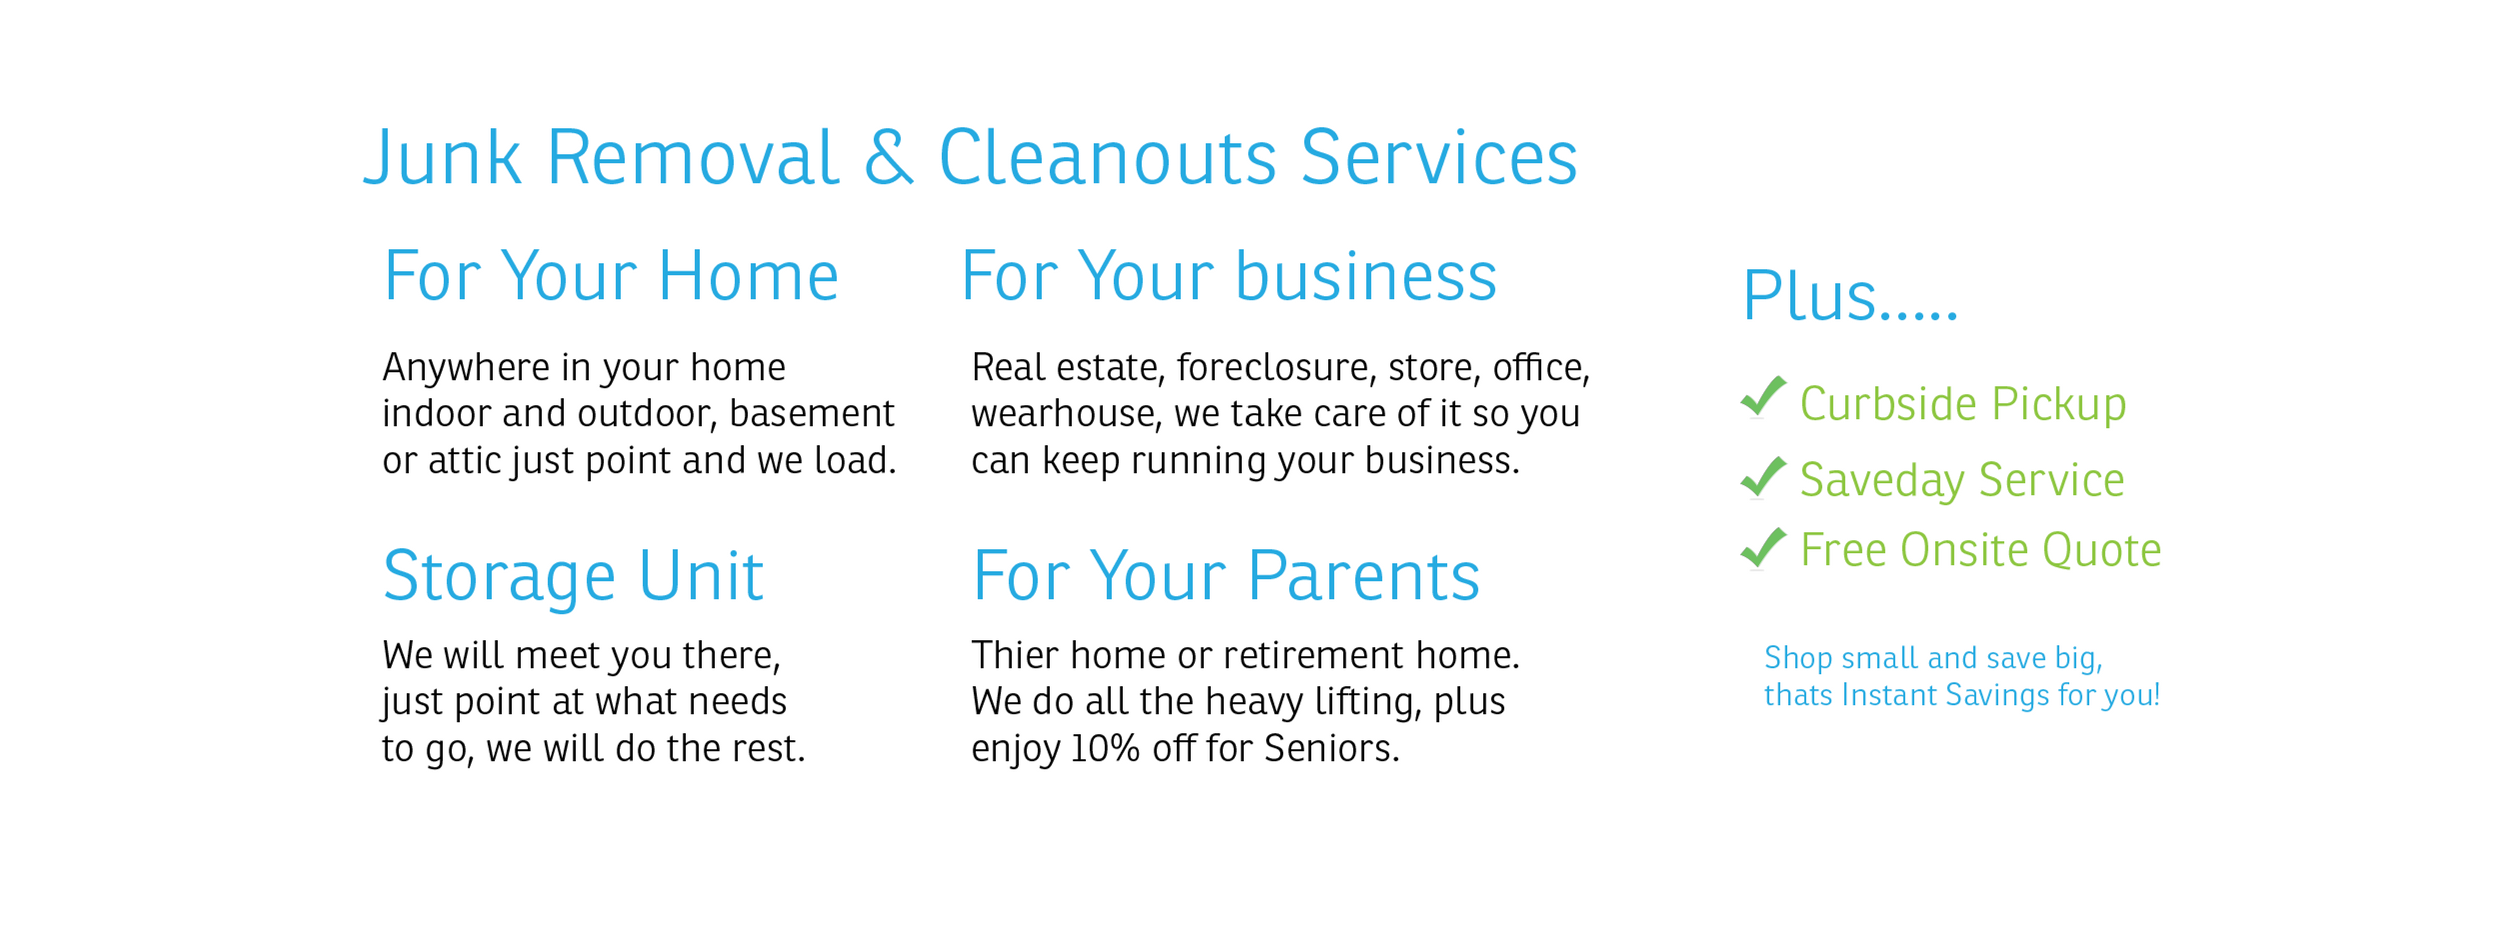 Speedy Junk Removal & Cleanout   New Hampshire Junk Removal Services